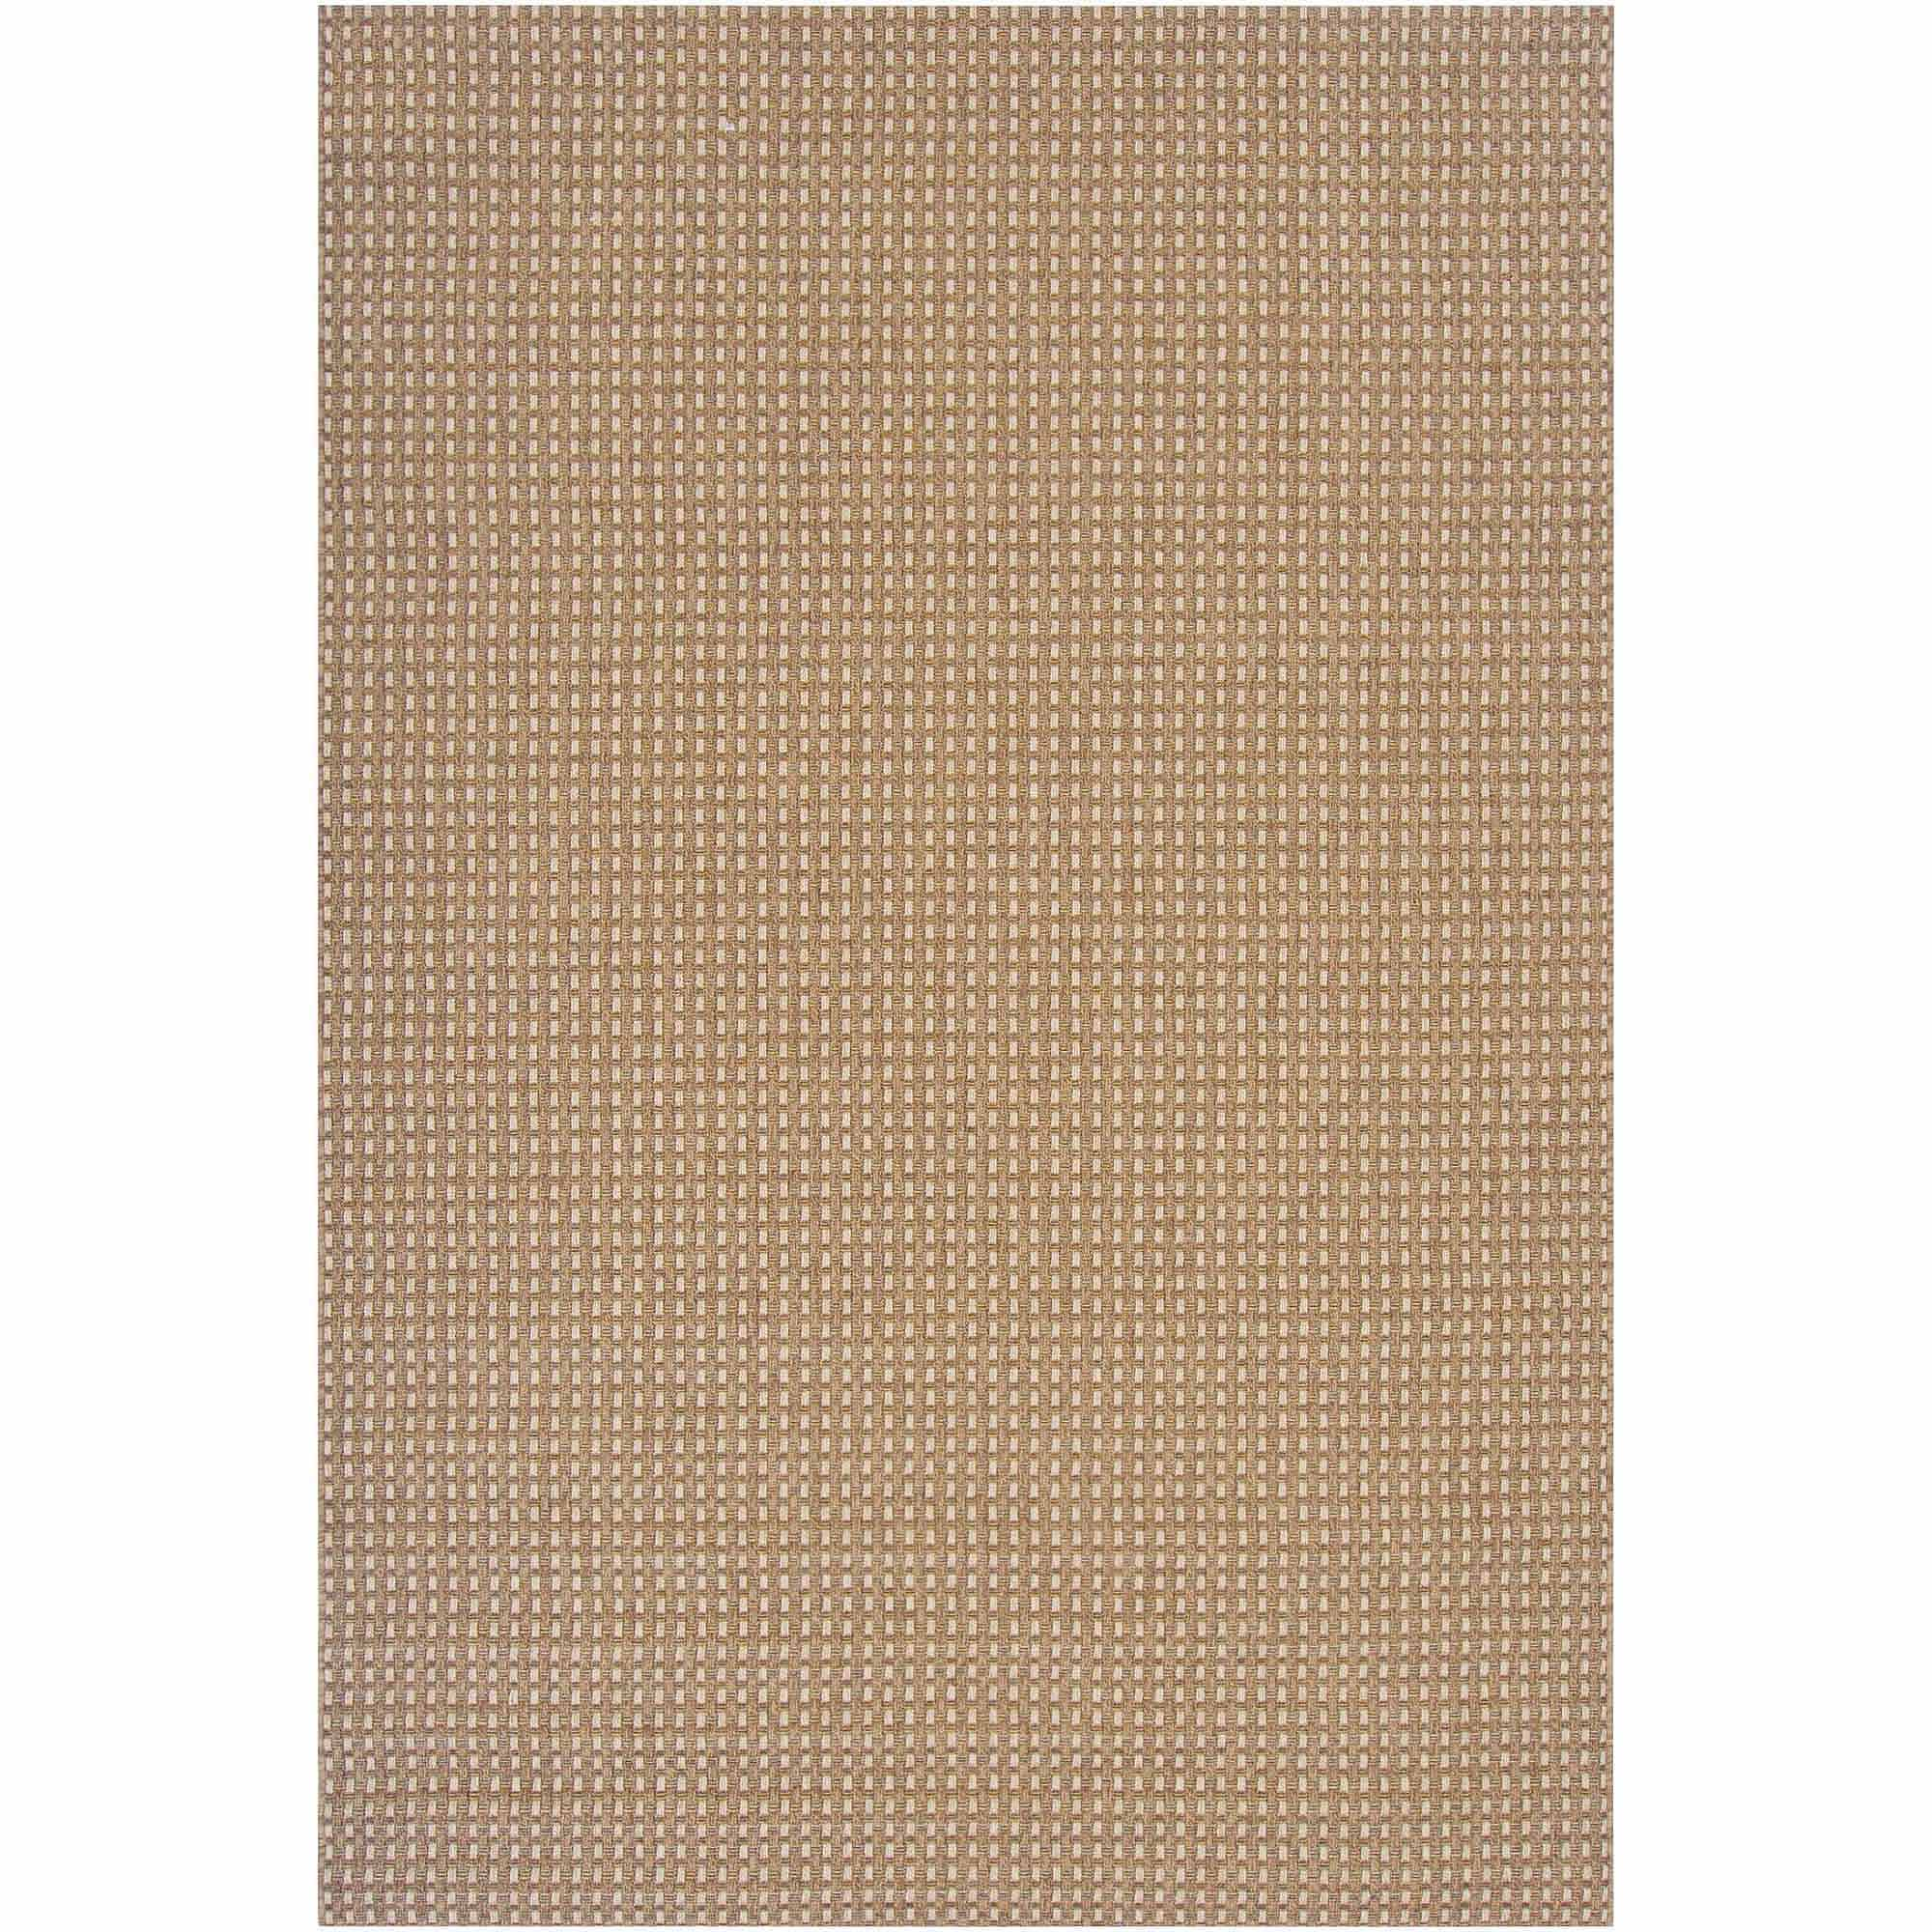 Art of Knot Newport Machine Made Basket-Weave Indoor/Outdoor Area Rug, Beige